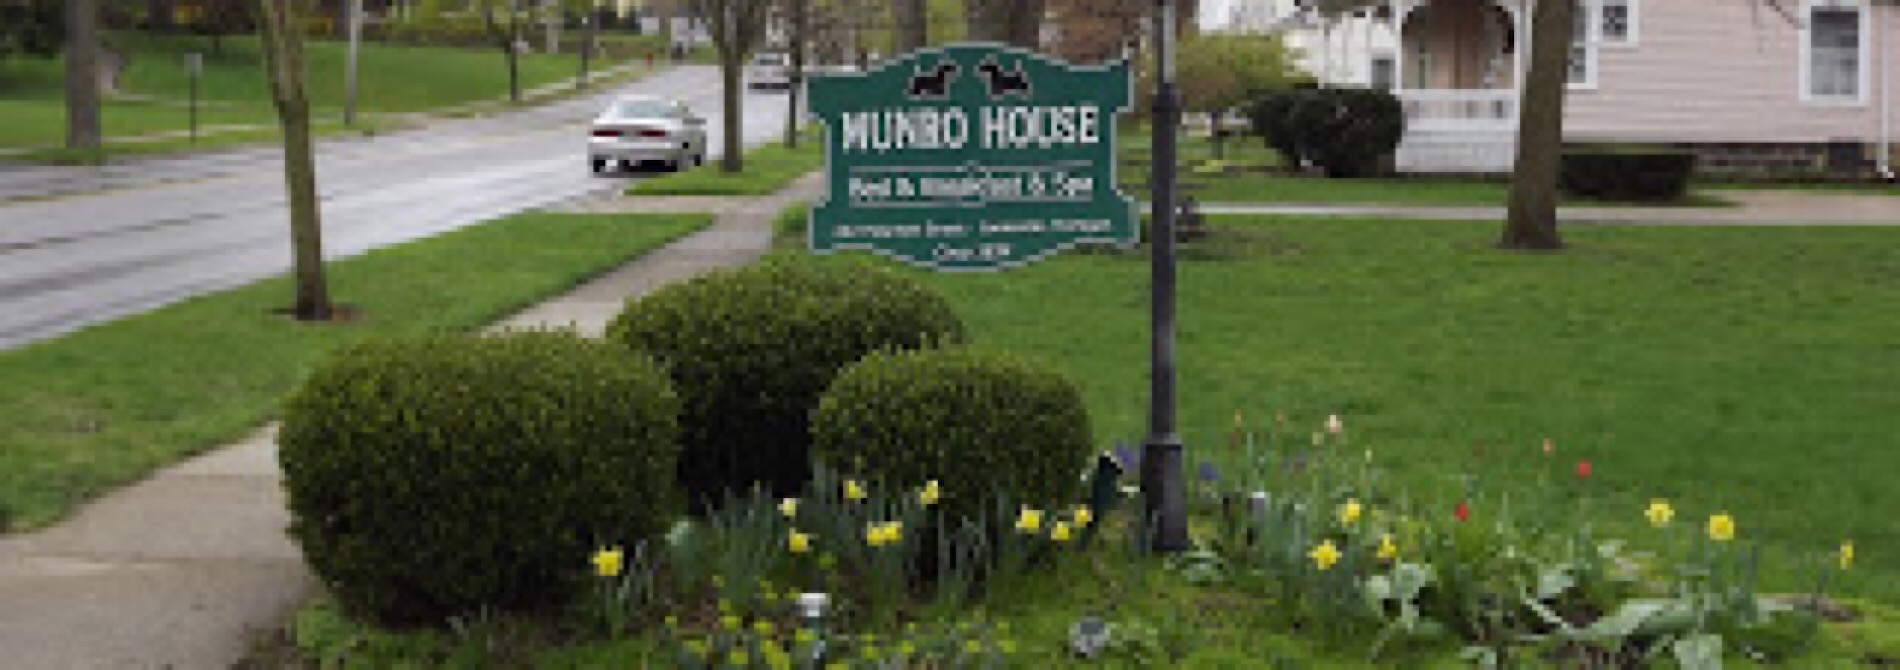 green and white munro house sign with yellow flowers